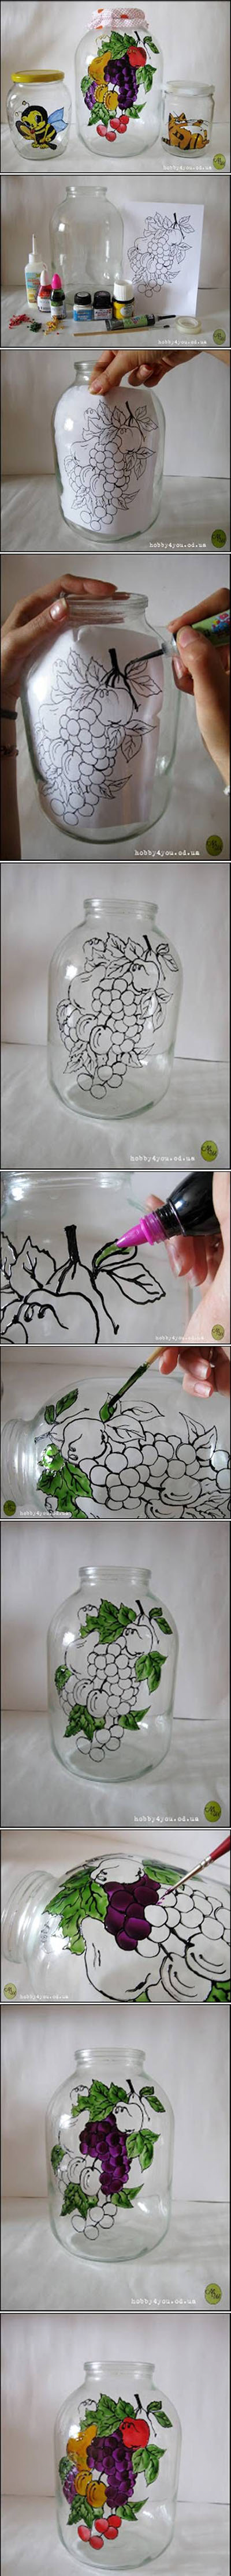 21 DIY Jar Painting Decor86b6b47c54a02